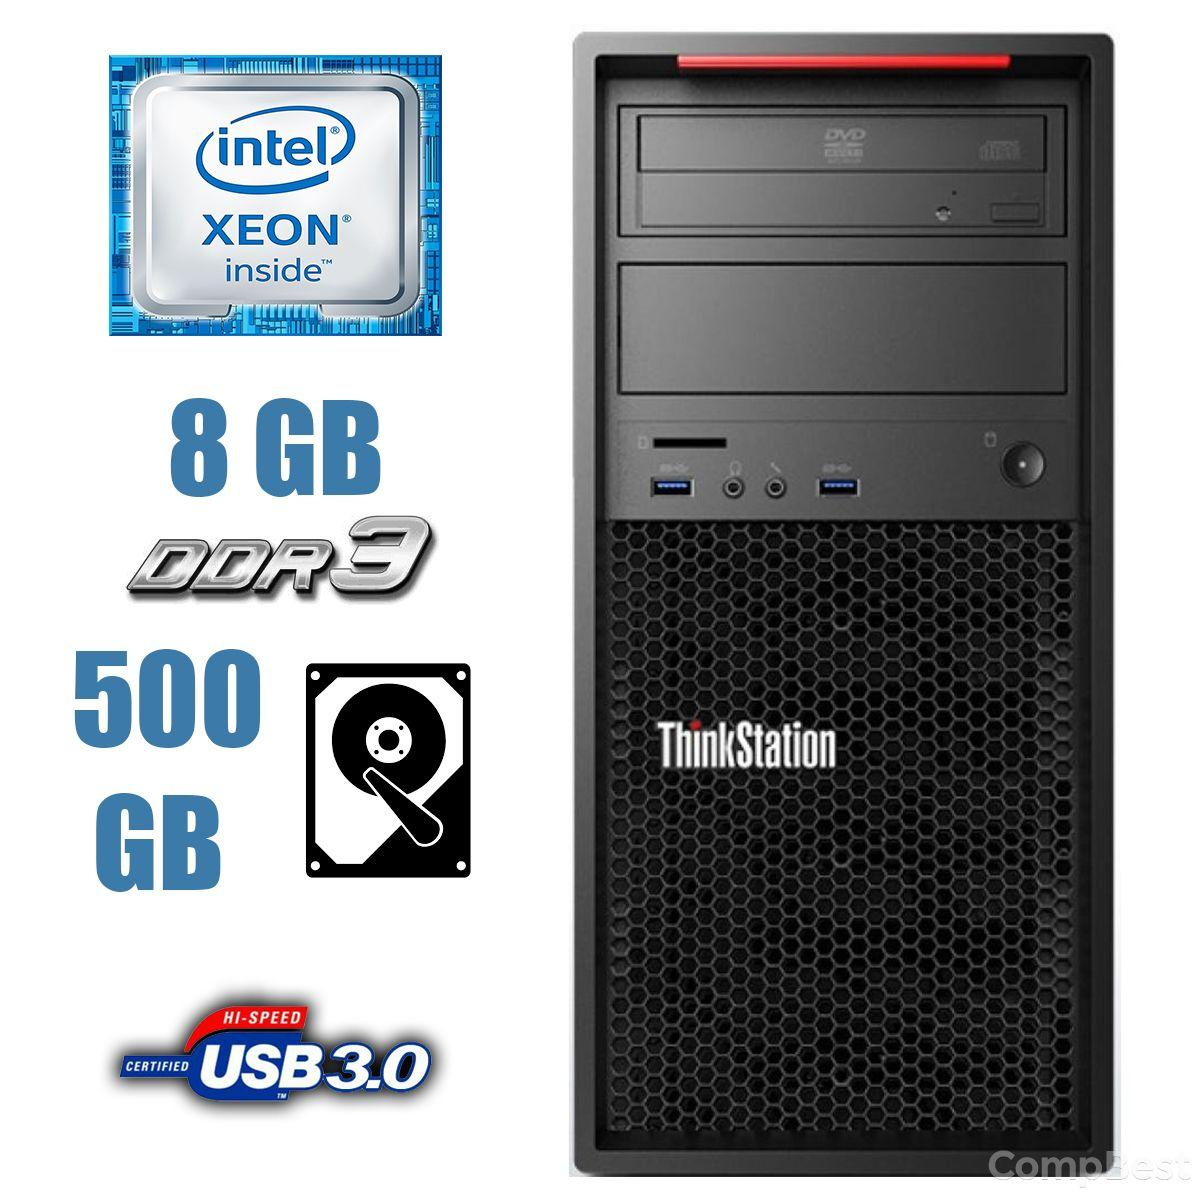 Lenovo ThinkStation P300 / Intel Xeon E3-1220 v3 (4 ядра по 3.1-3.5GHz) / 8 GB DDR3 / 500 GB HDD / nVidia Quadro / USB 3.0